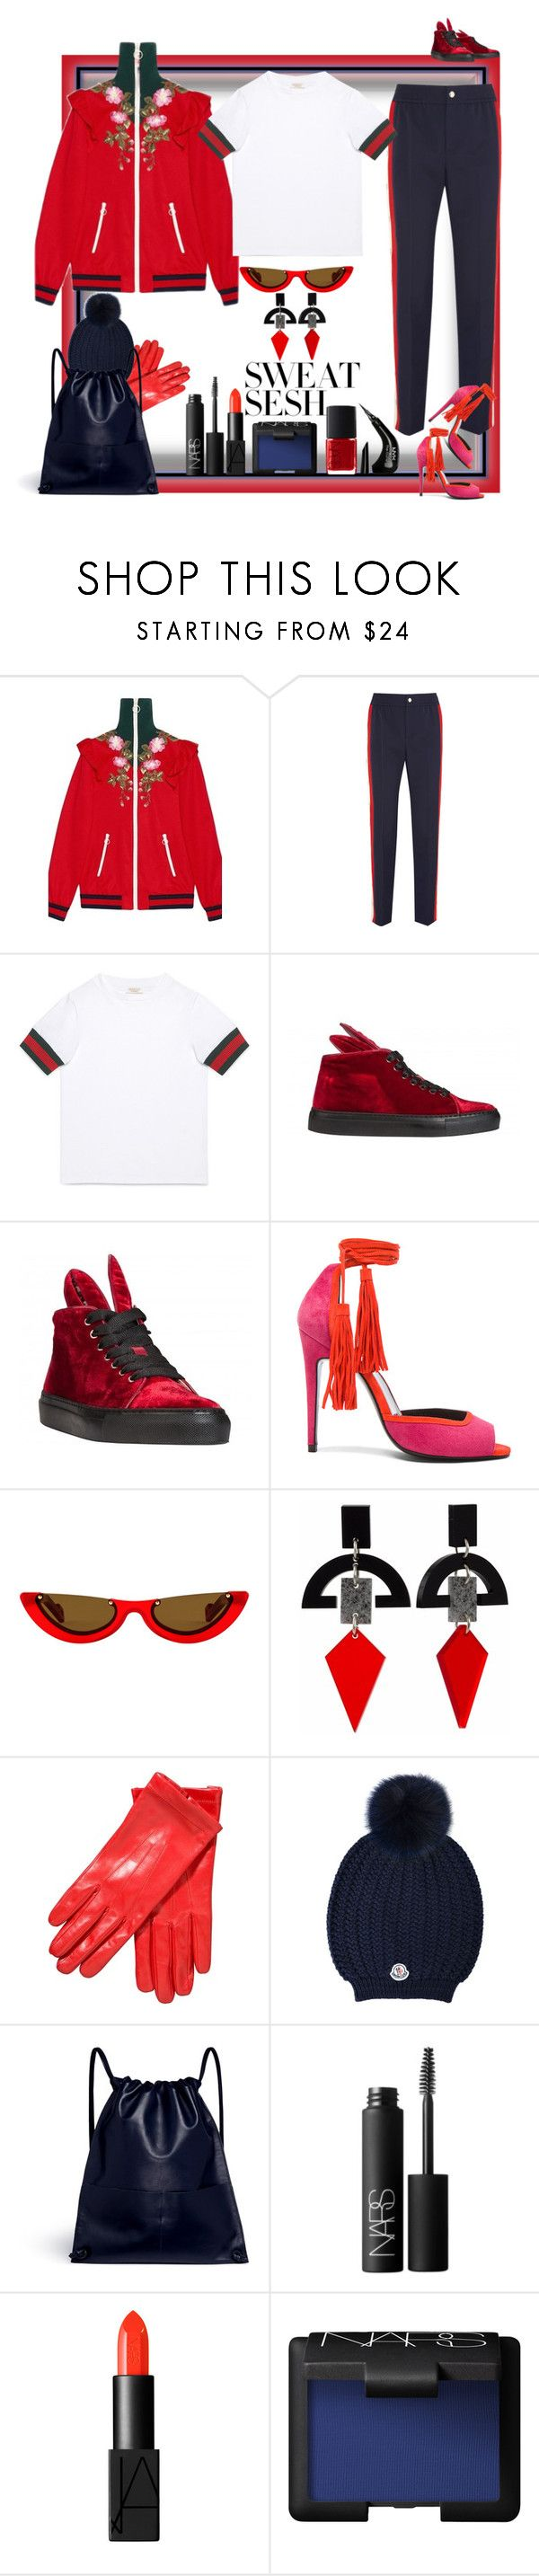 """Of course I have my sneakers with me! What did you think?"" by ritva-harjula ❤ liked on Polyvore featuring Gucci, Minna Parikka, Pierre Hardy, Toolally, John Lewis, Moncler, A-Esque, NARS Cosmetics, NYX and minnaparikka"